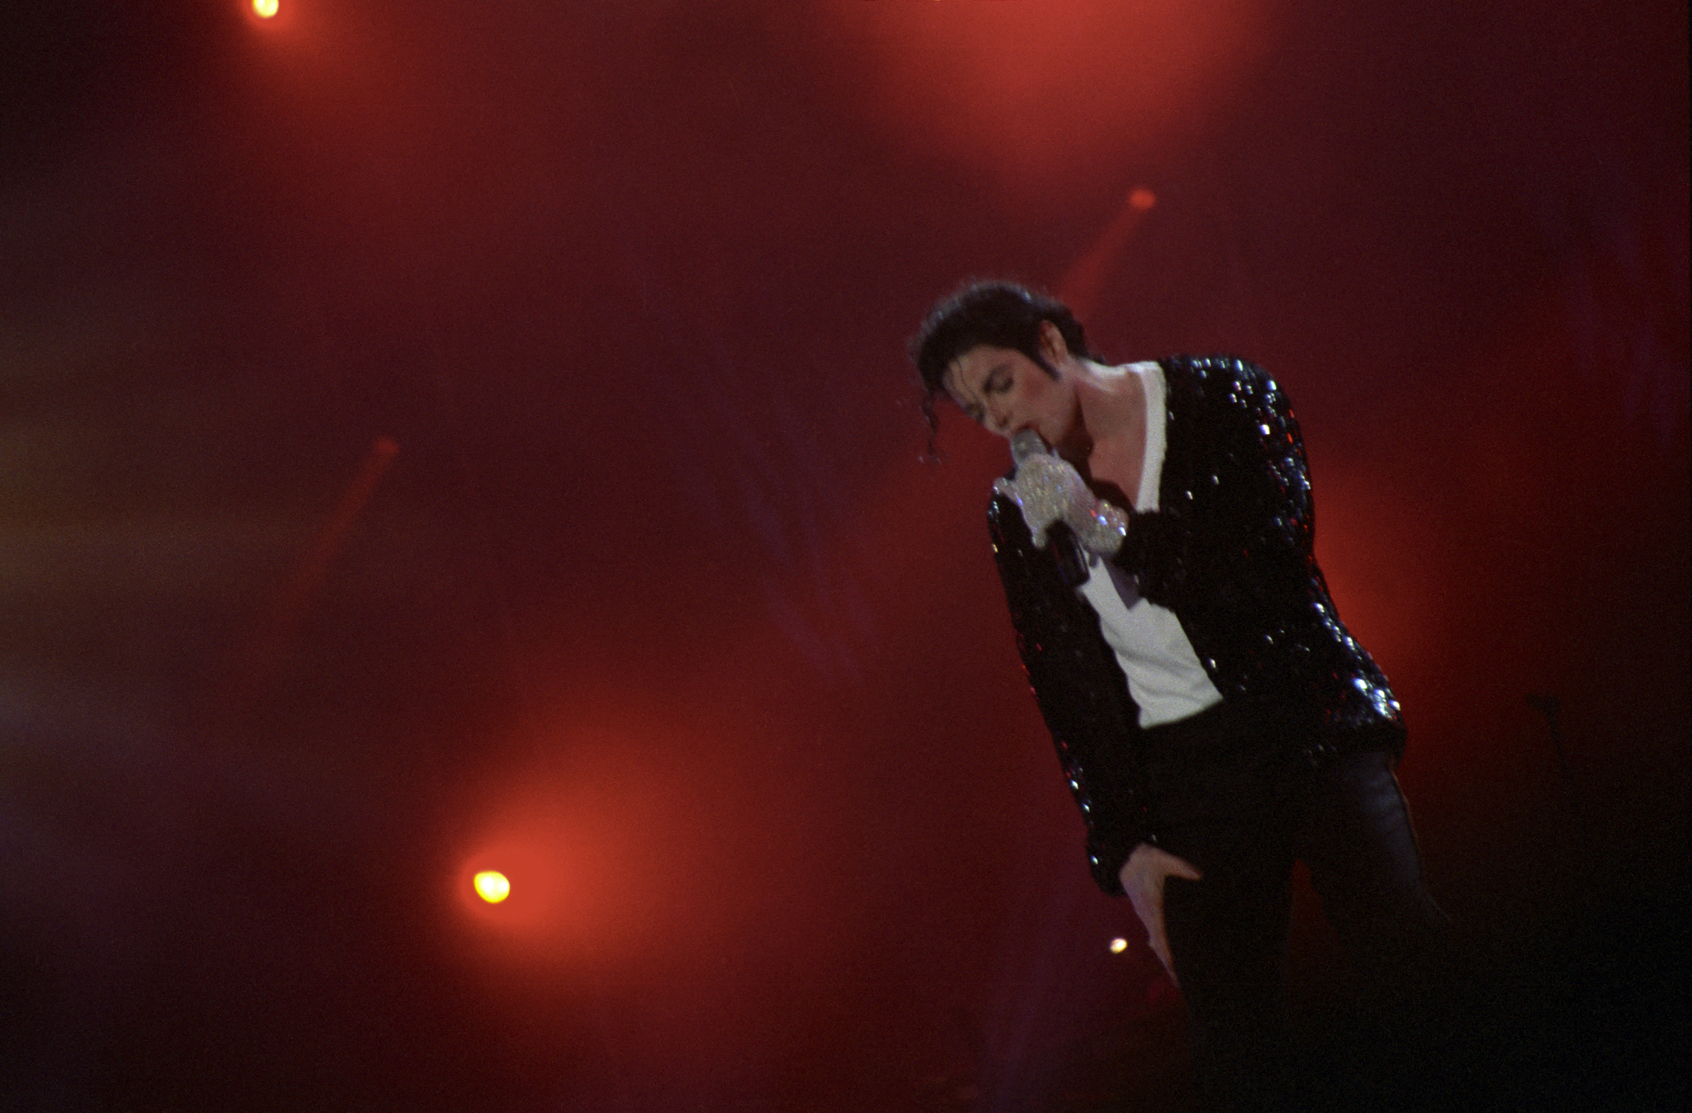 Michael Jacksons Moonwalk images kingofdancefloorcom HD 1692x1113